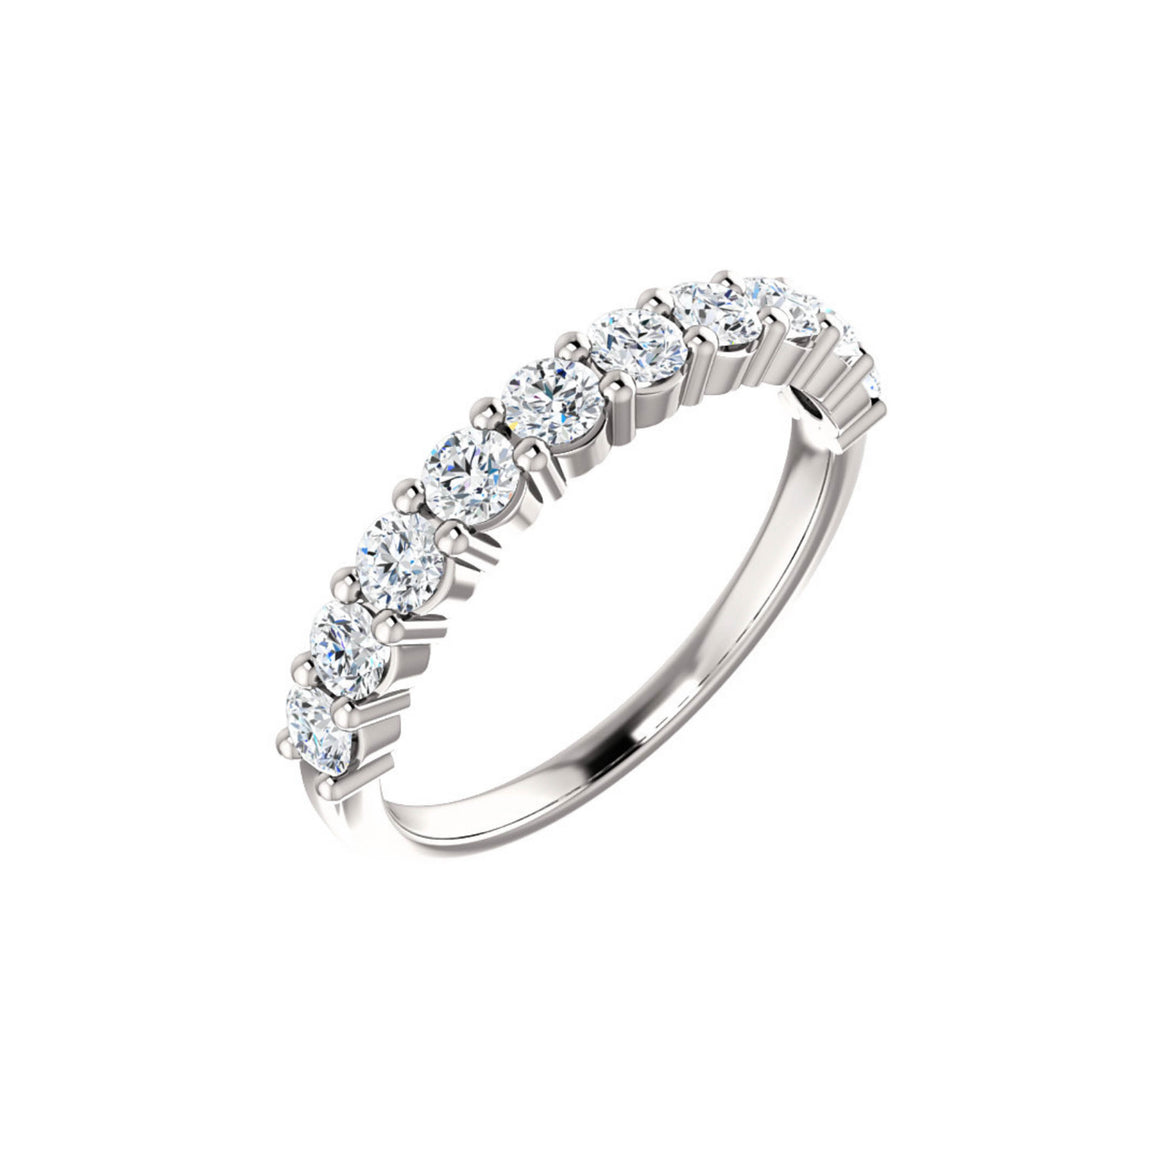 14k Gold 1 Carat Diamond Anniversary Band - Talisman Collection